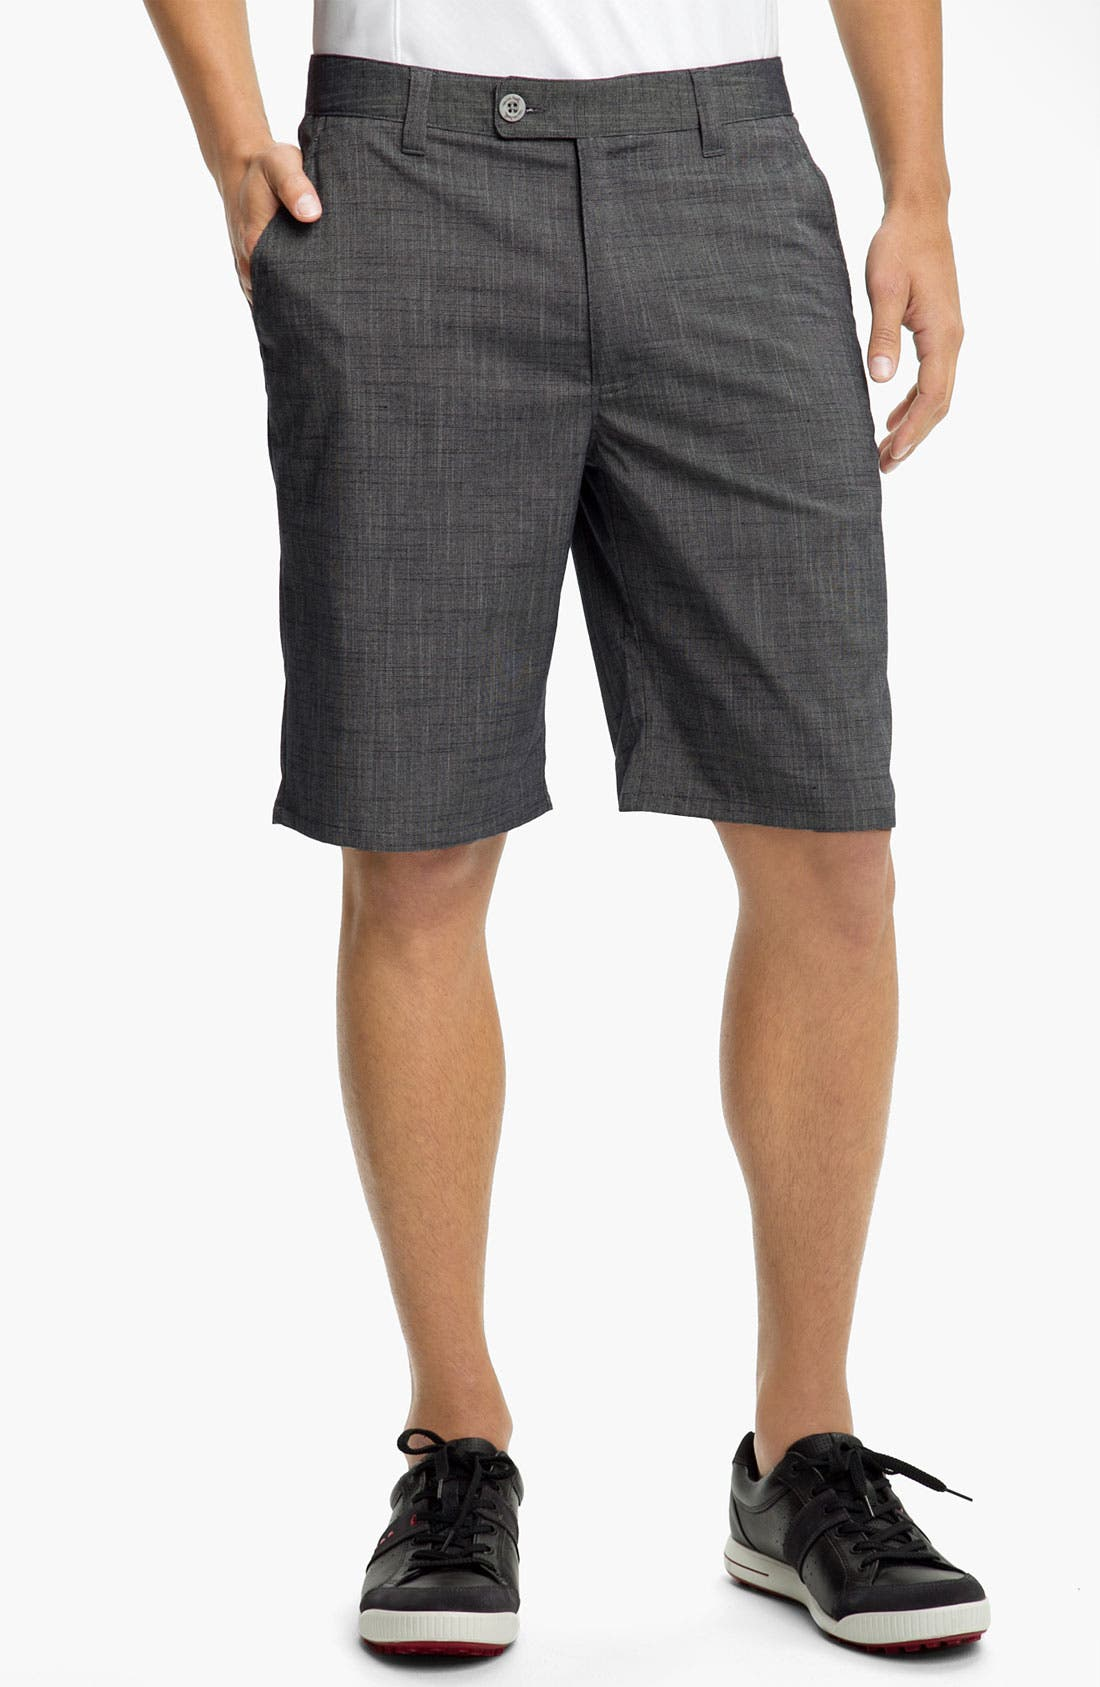 Alternate Image 1 Selected - Travis Mathew 'Tickle' Shorts